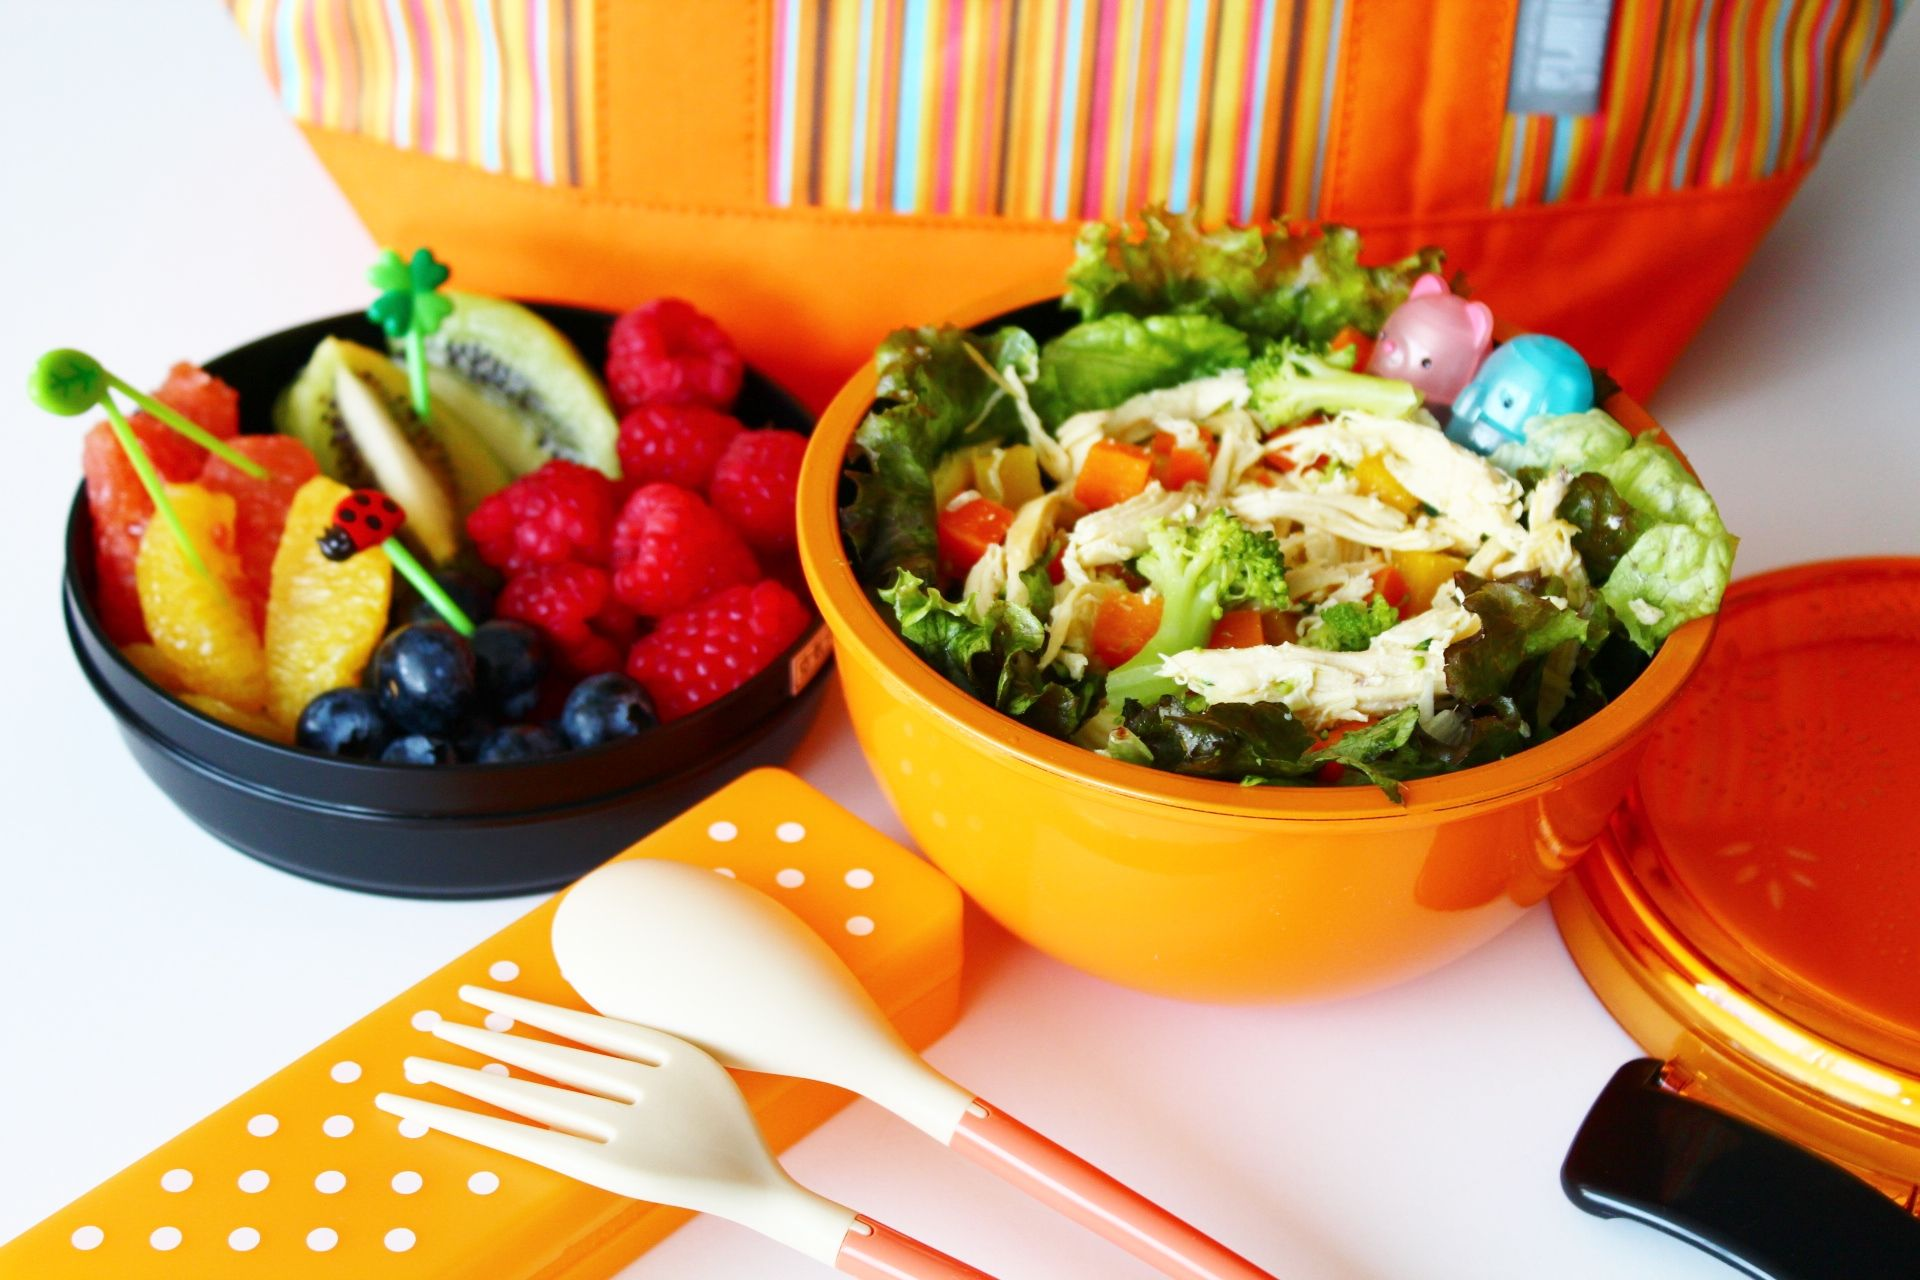 CHICKEN SALAD WITH FRUIT BENTO